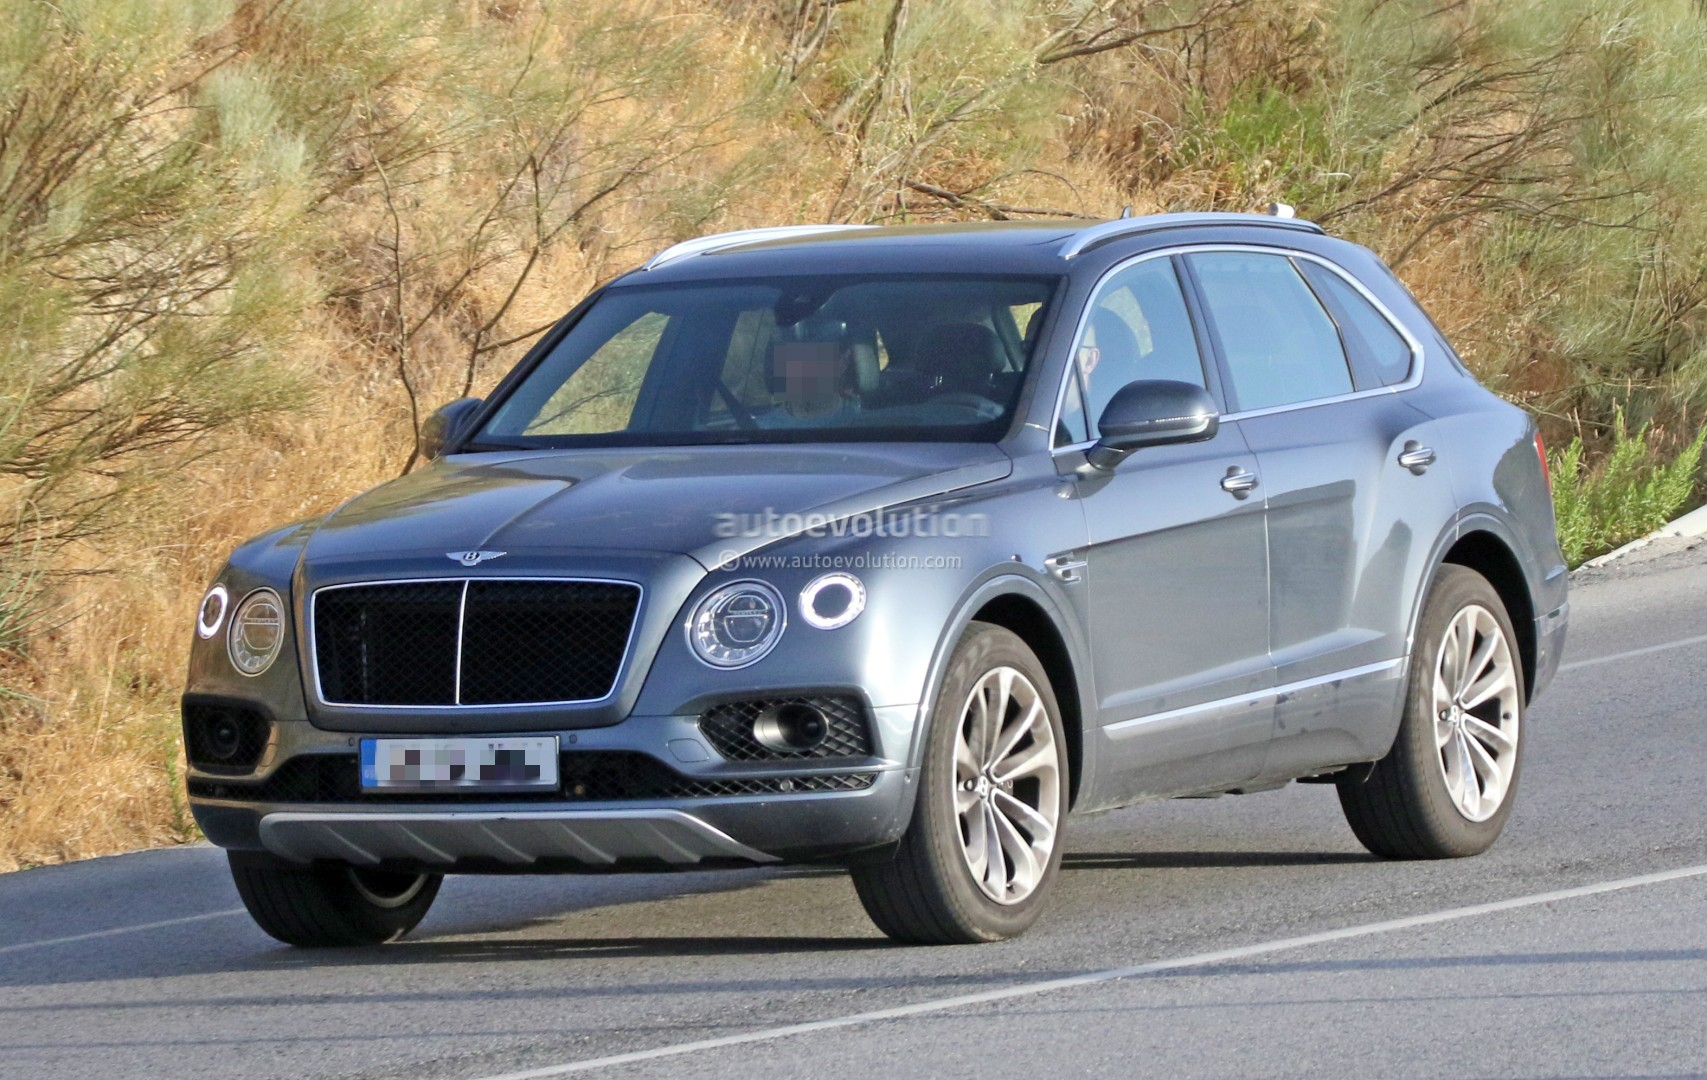 2016 Bentley Bentayga (SUV) 42